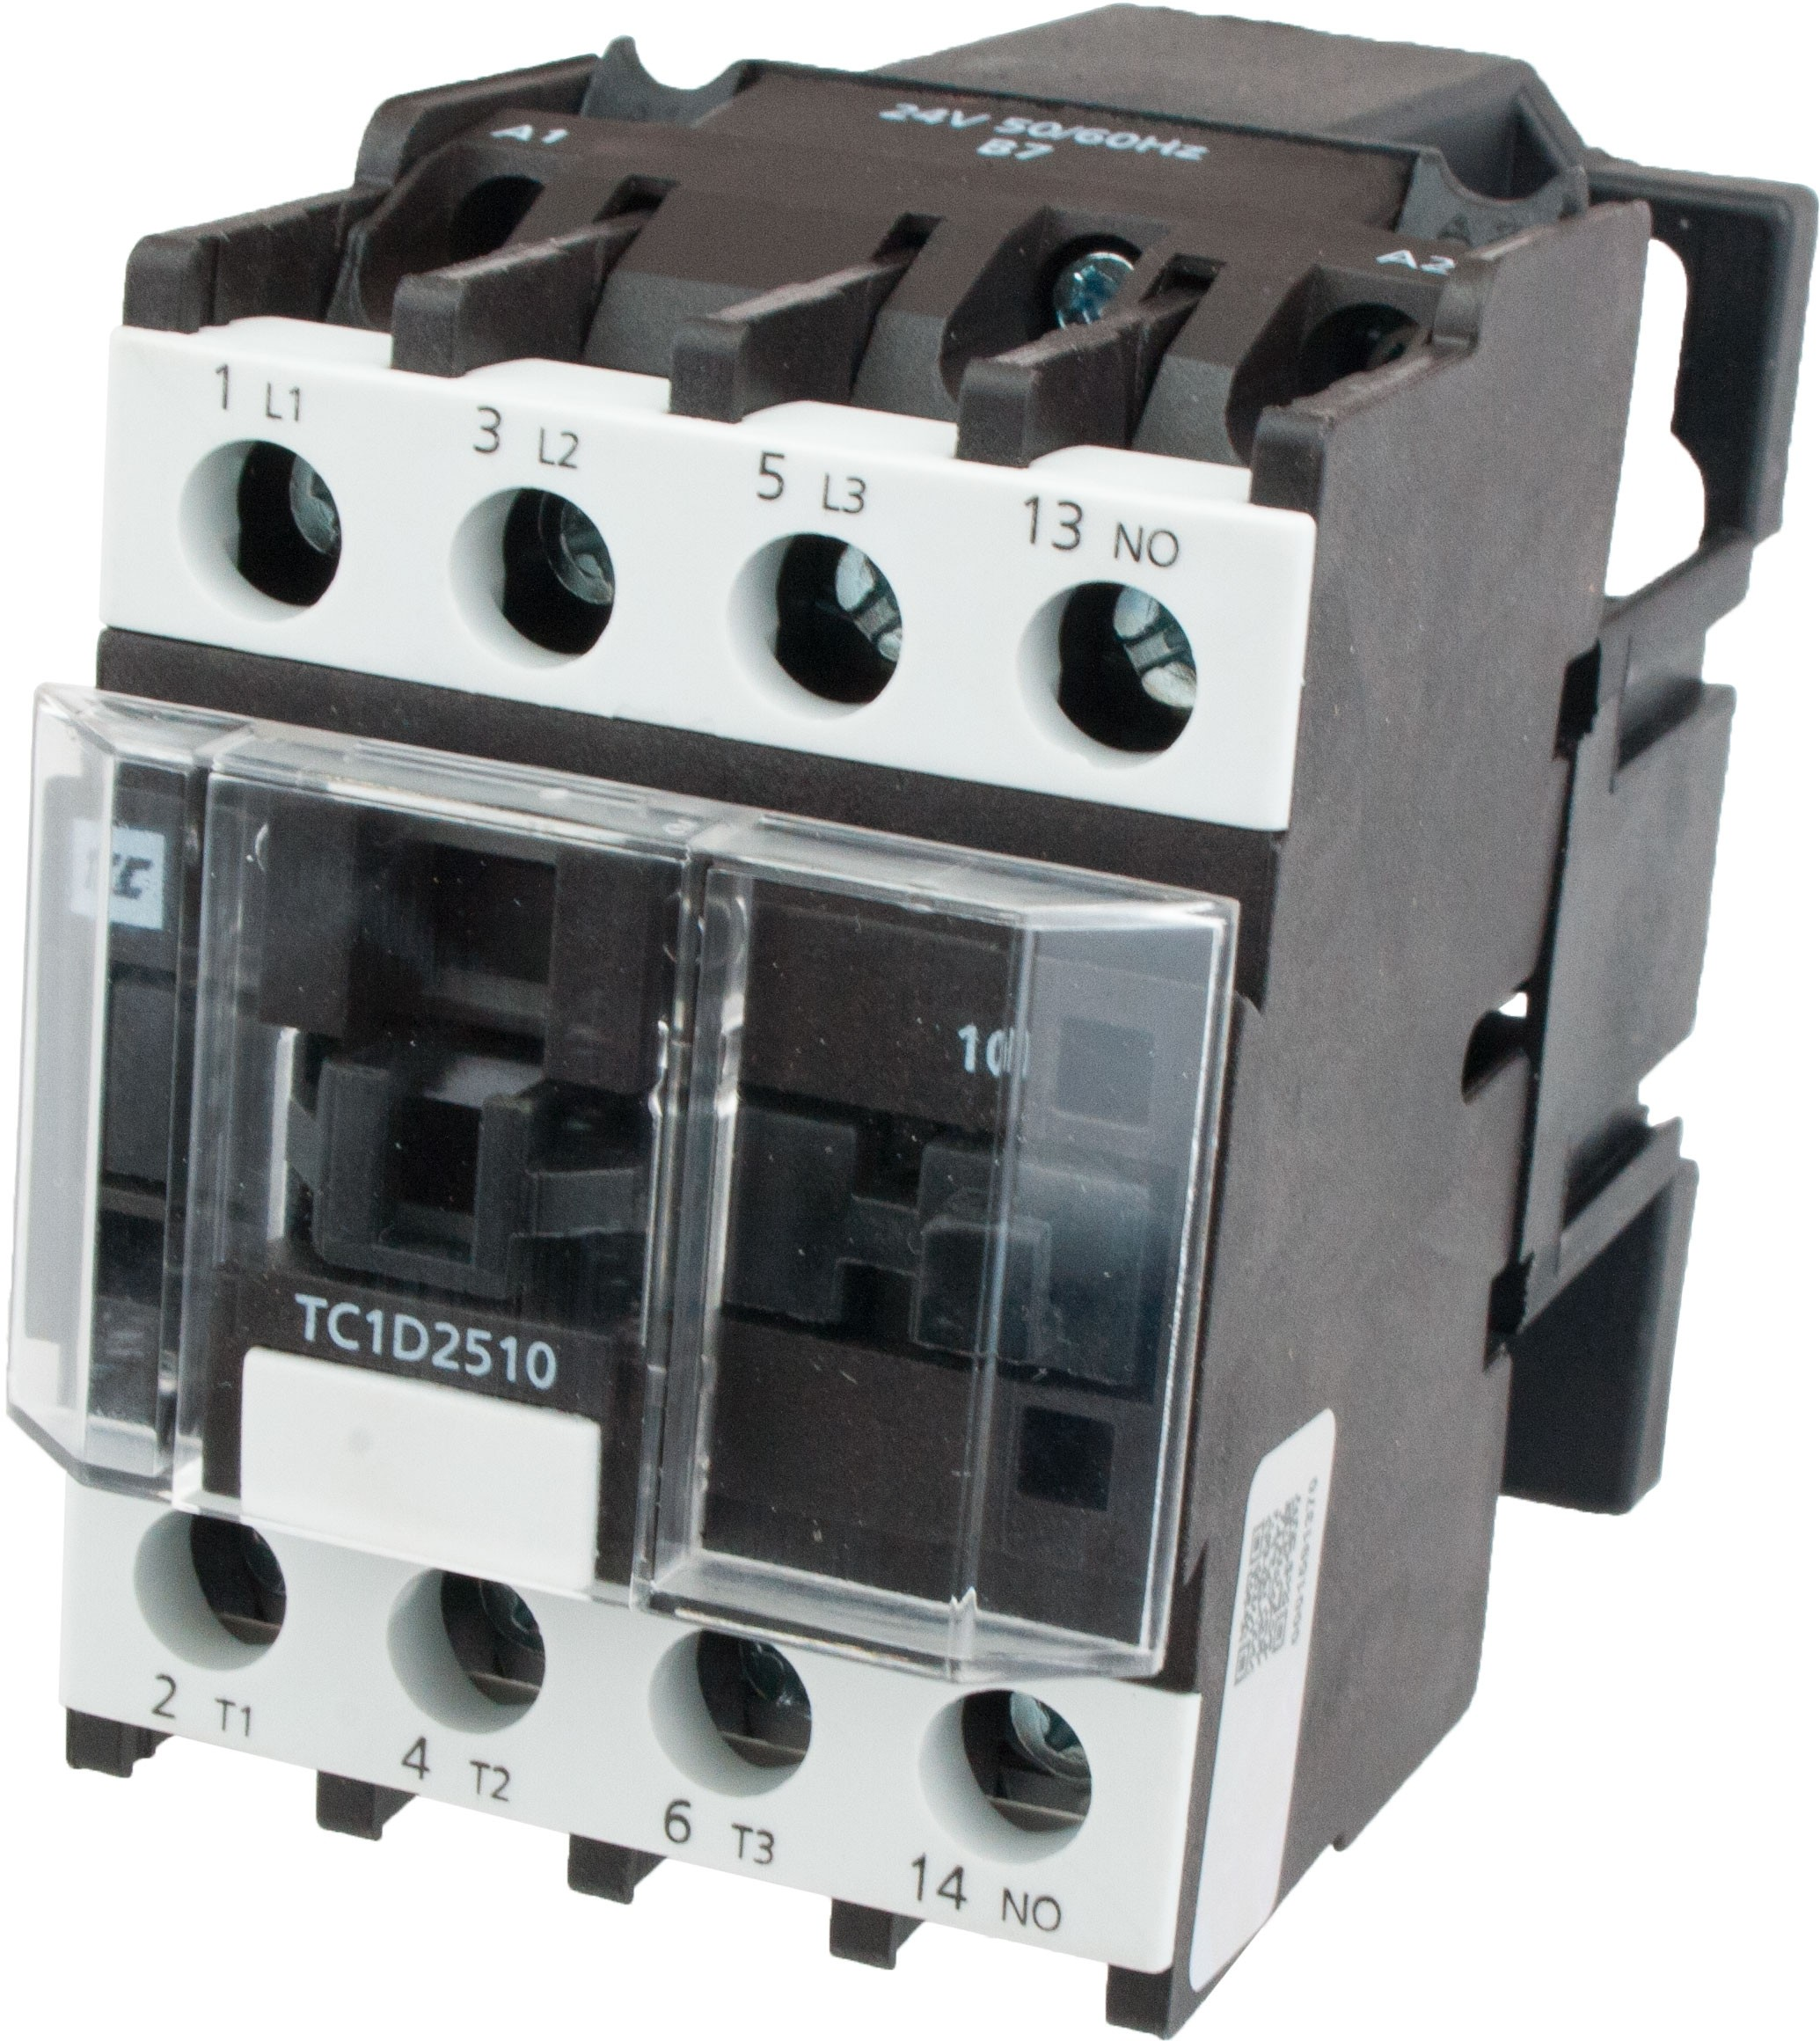 3 Pole Contactor 25 Amp 1 N O 24 Volt Ac Coil Tc1d2510b7 Elecdirect Details About Push Button 5 Circuit Breaker For 12 50 Volts Dc Be The First To Review This Product